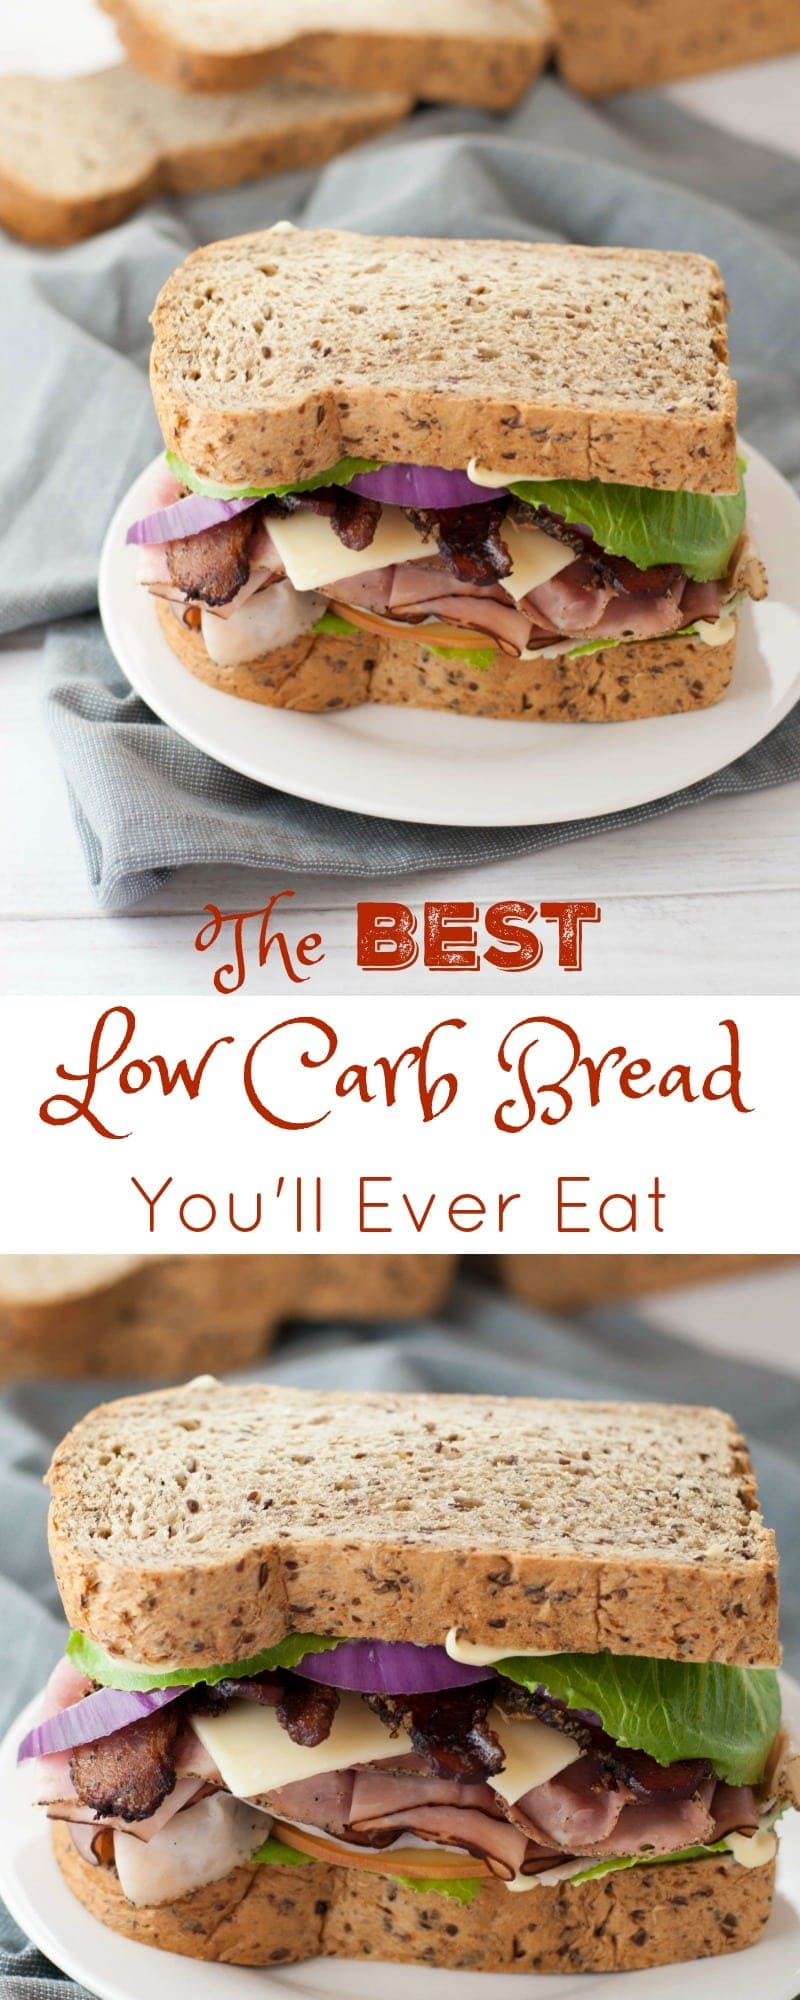 The Best Low Carb Bread you'll Ever Eat - Peace Love and Low Carb